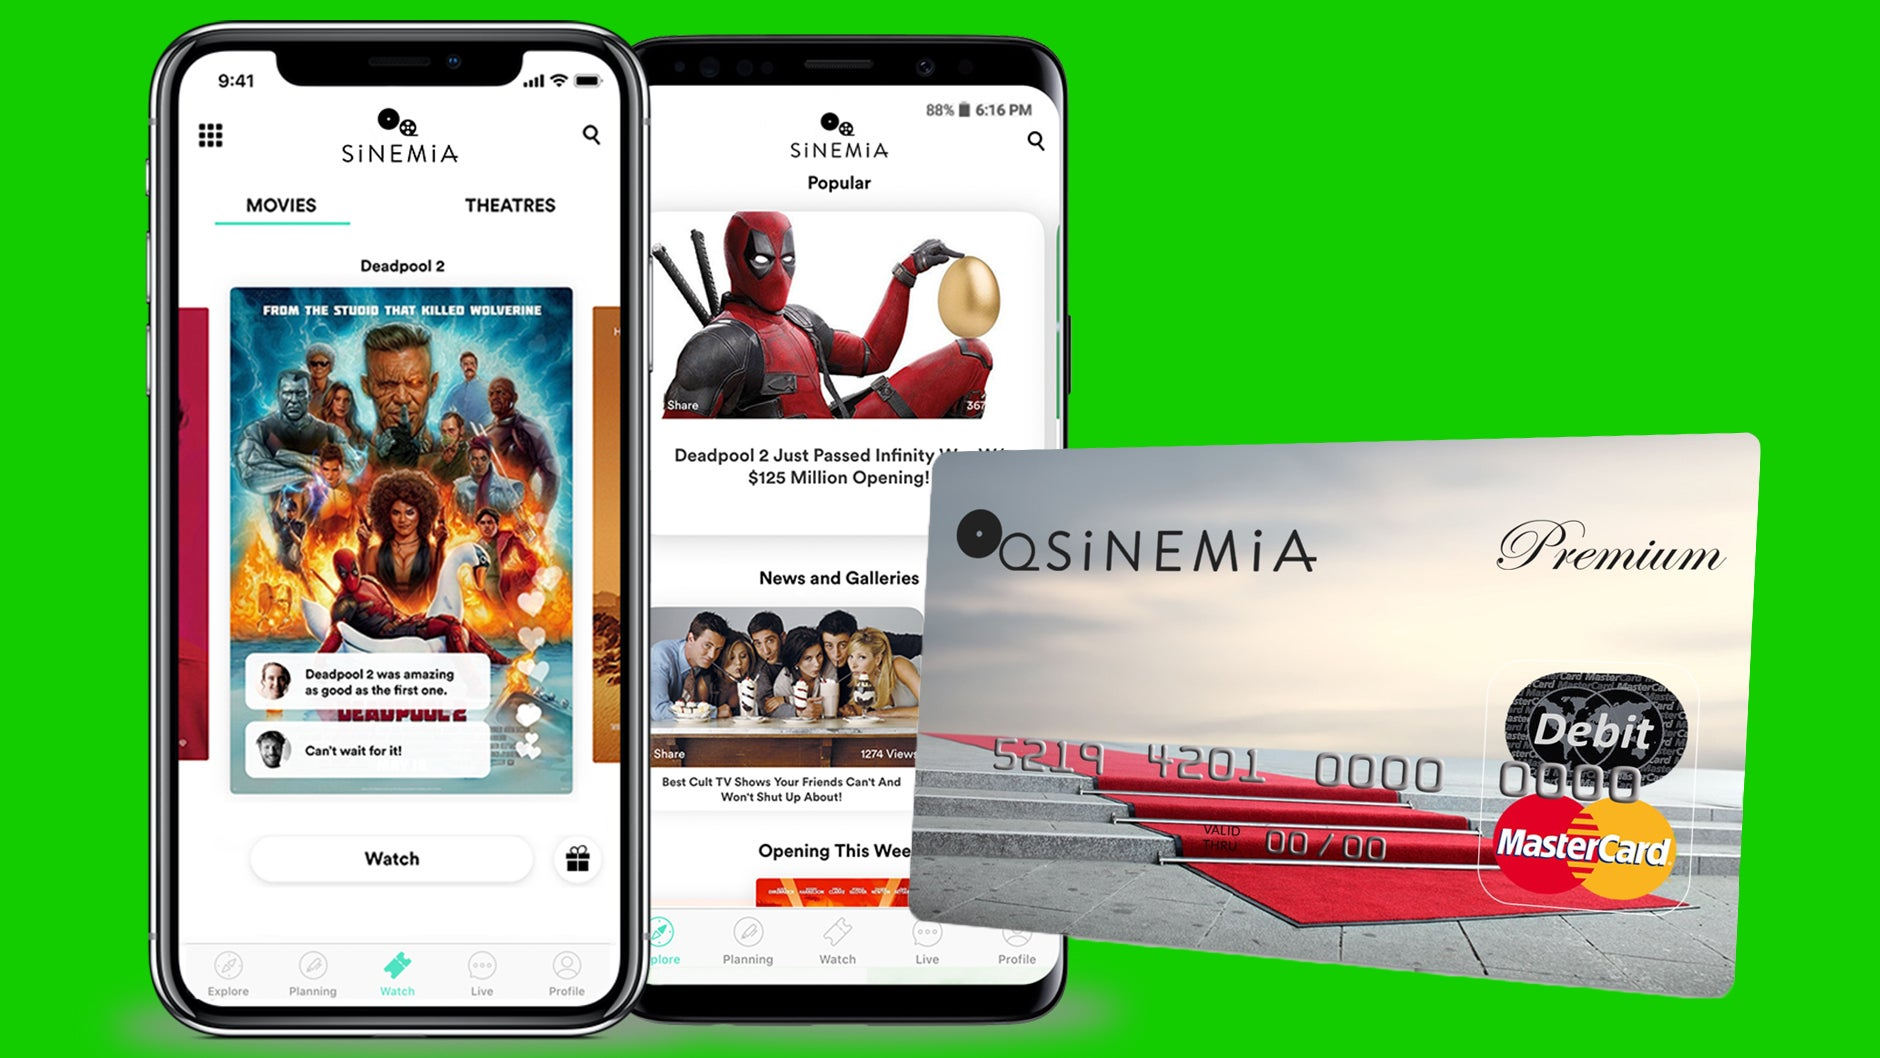 Subscription Movie Ticket Service Sinemia Is Having A Winter Sale